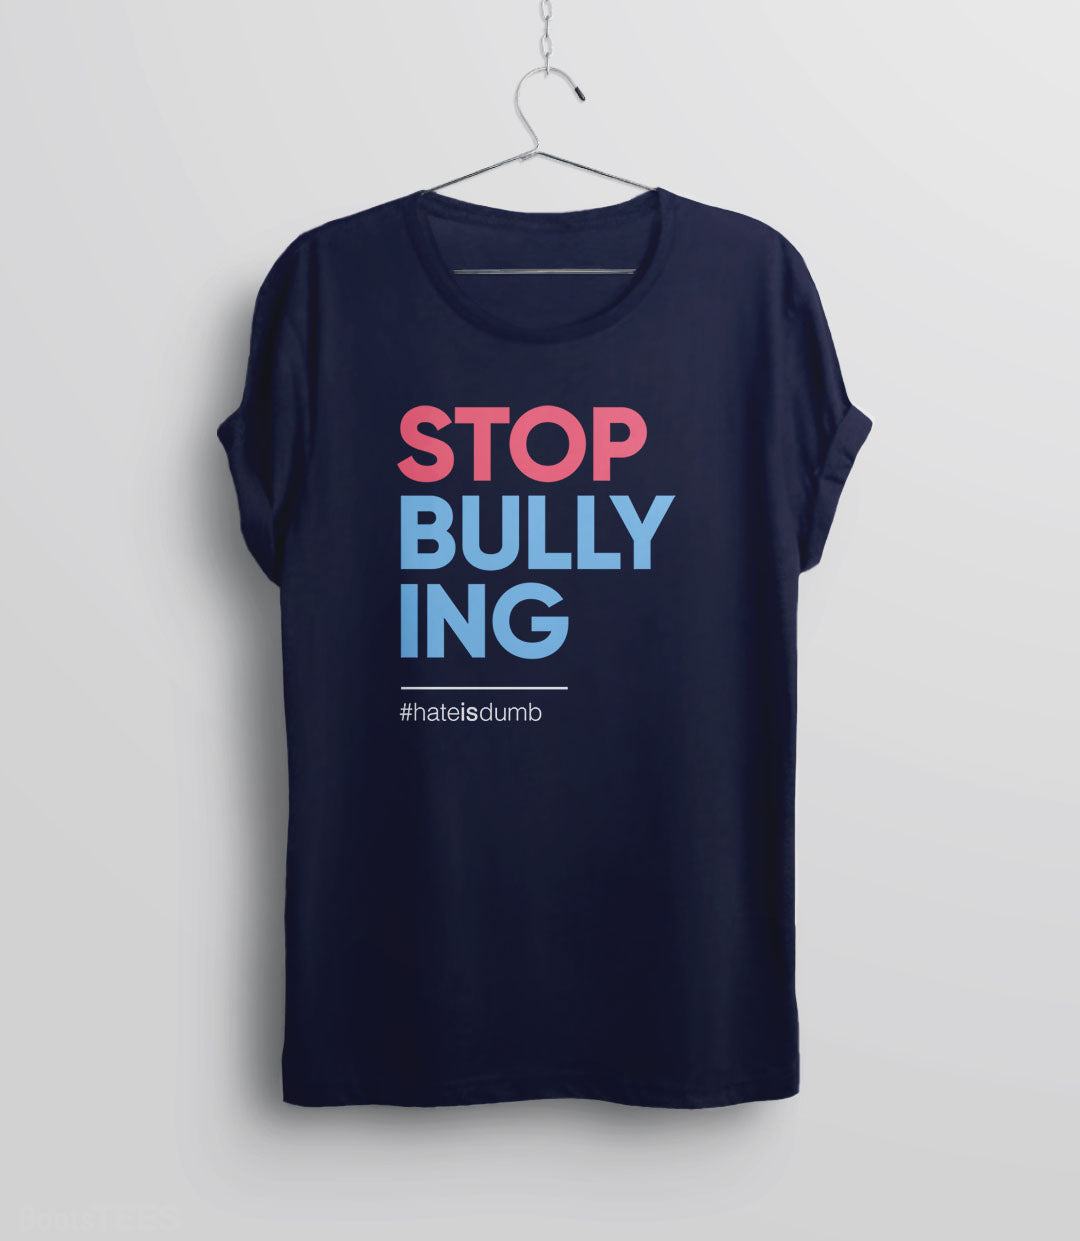 Stop Bullying anti-bullying t-shirt - navy unisex tee